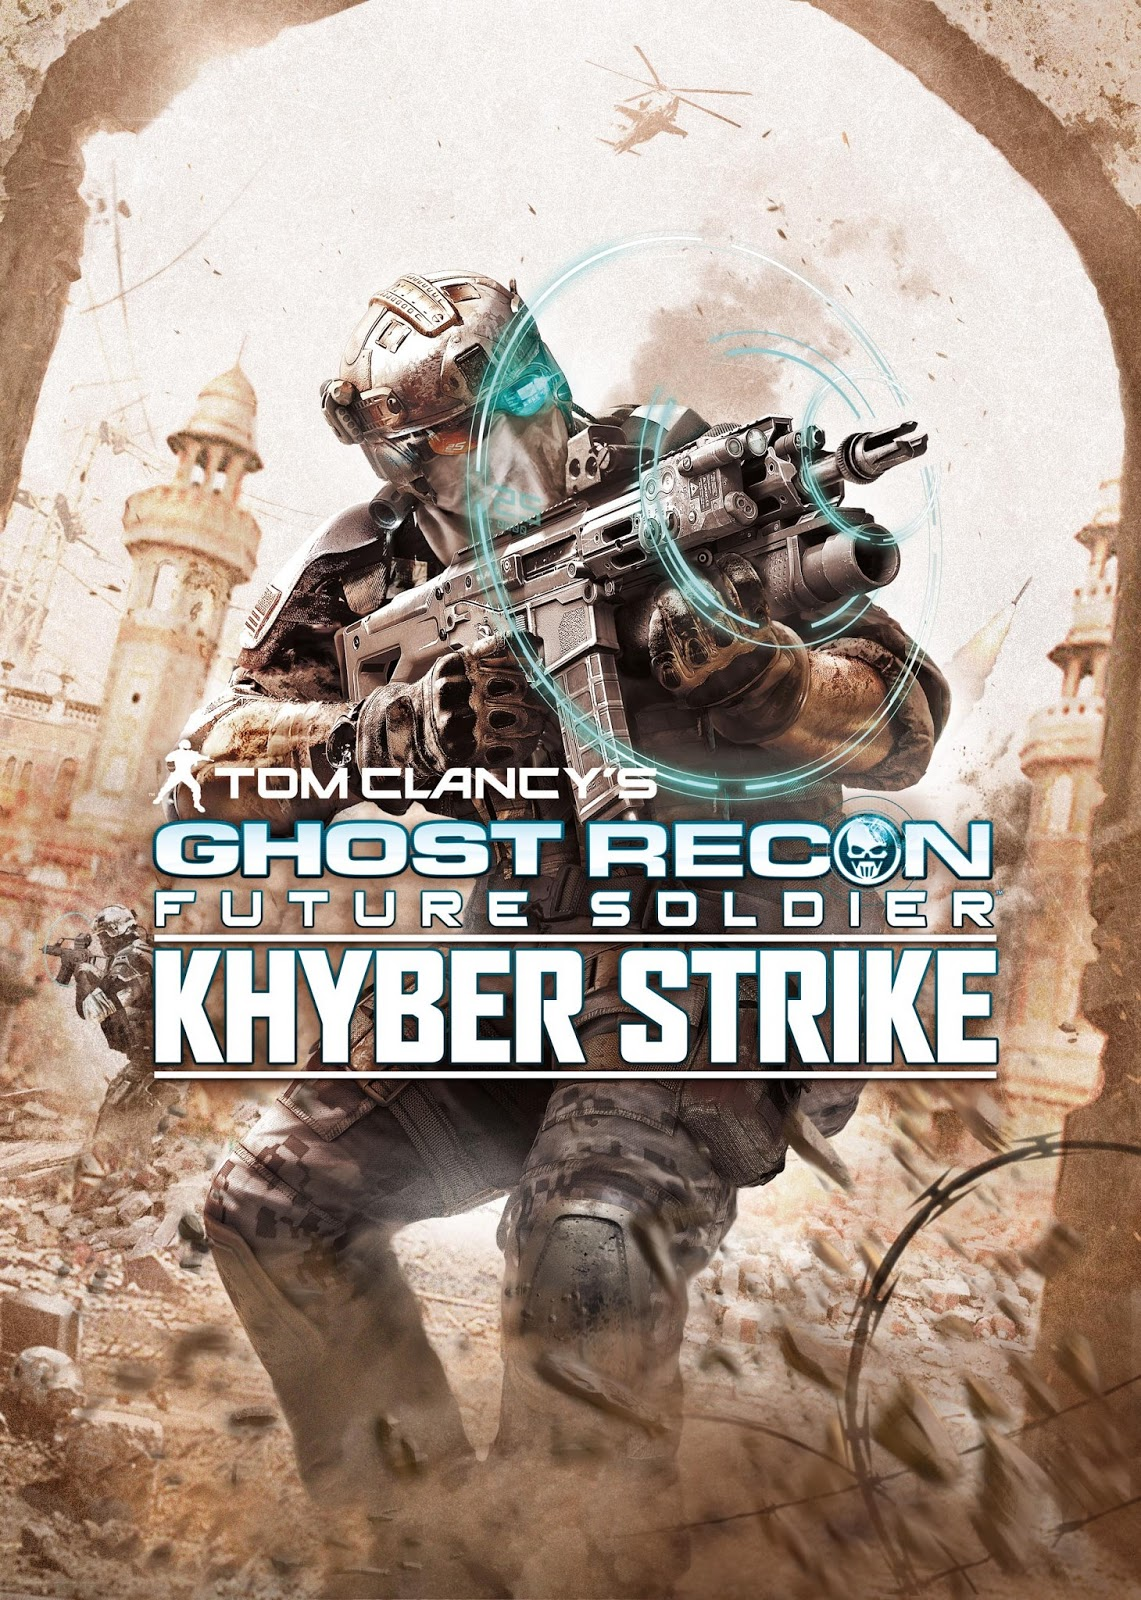 Ghost Recon: Future Soldier Khyber Strike